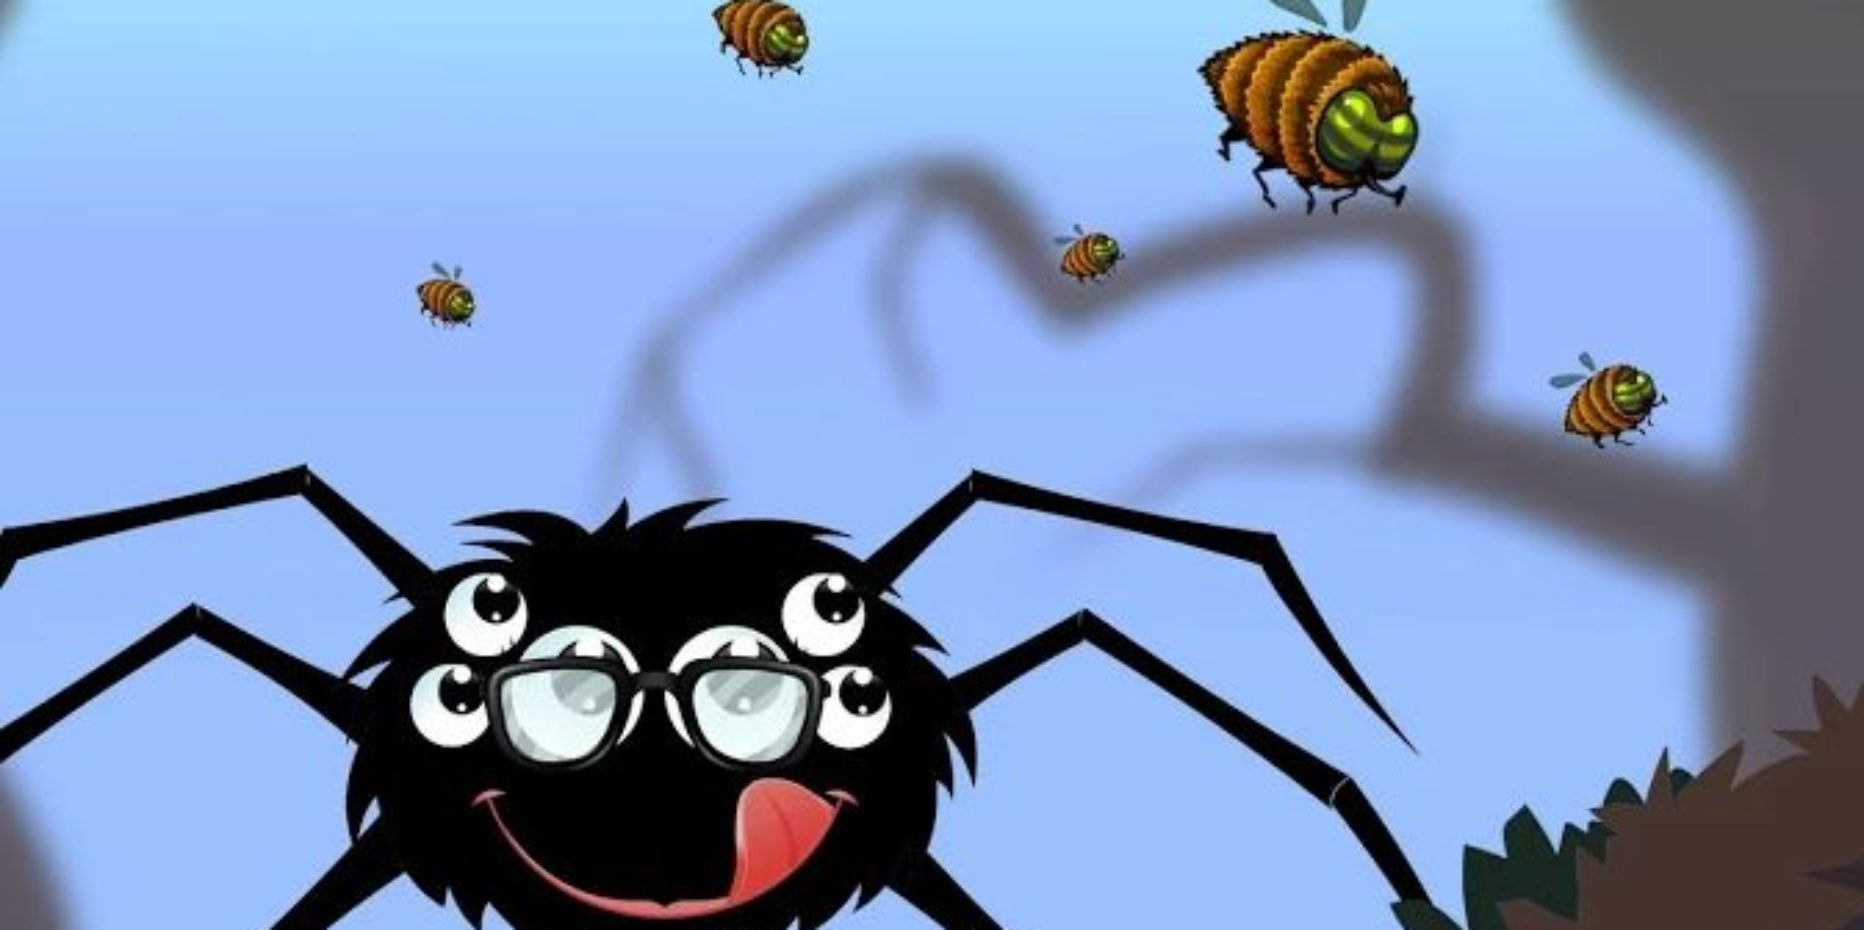 Feed the Spider – Fun Time Feeding a Spider and Learning Trivia